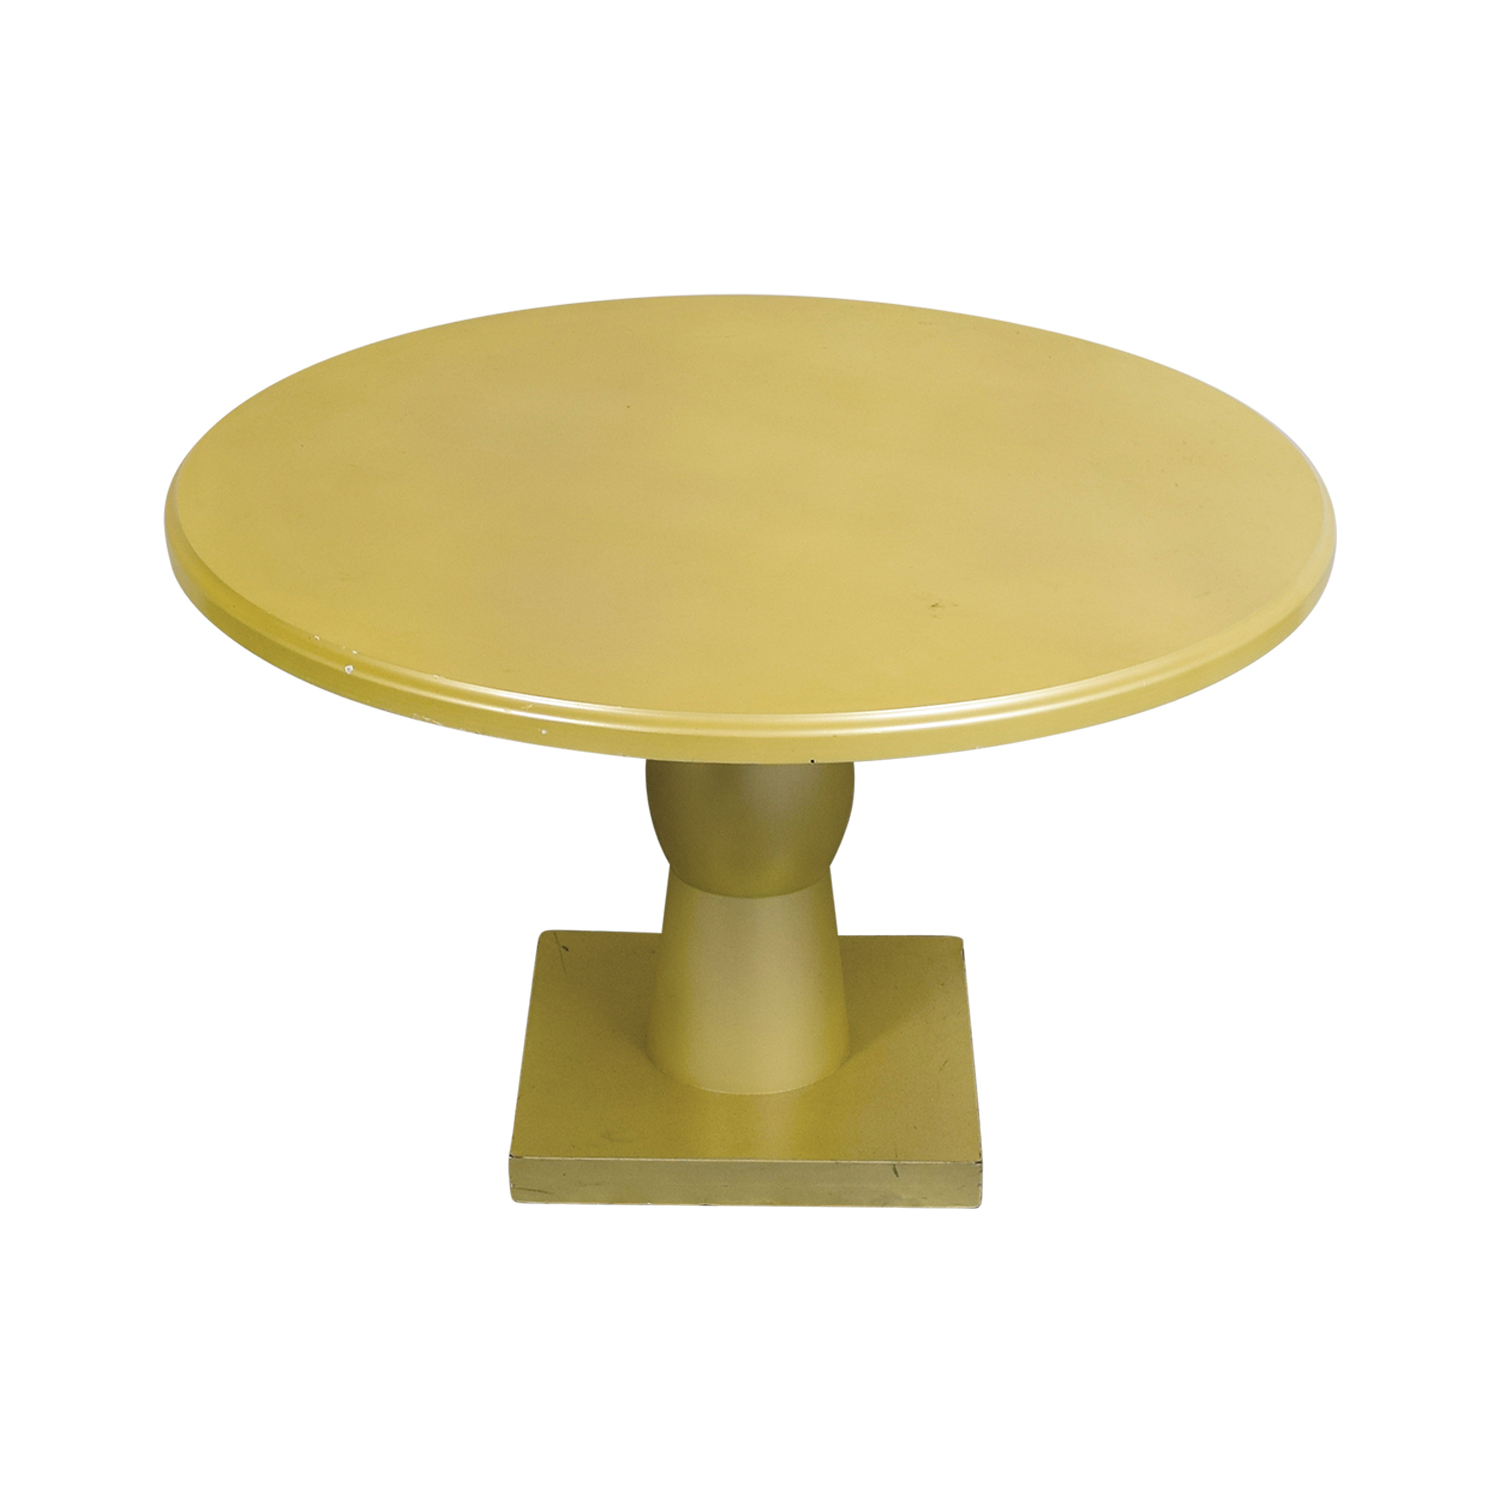 Christian Liaigre Christian Liaigre Holly Hunt Scarab Vanilla Table for sale